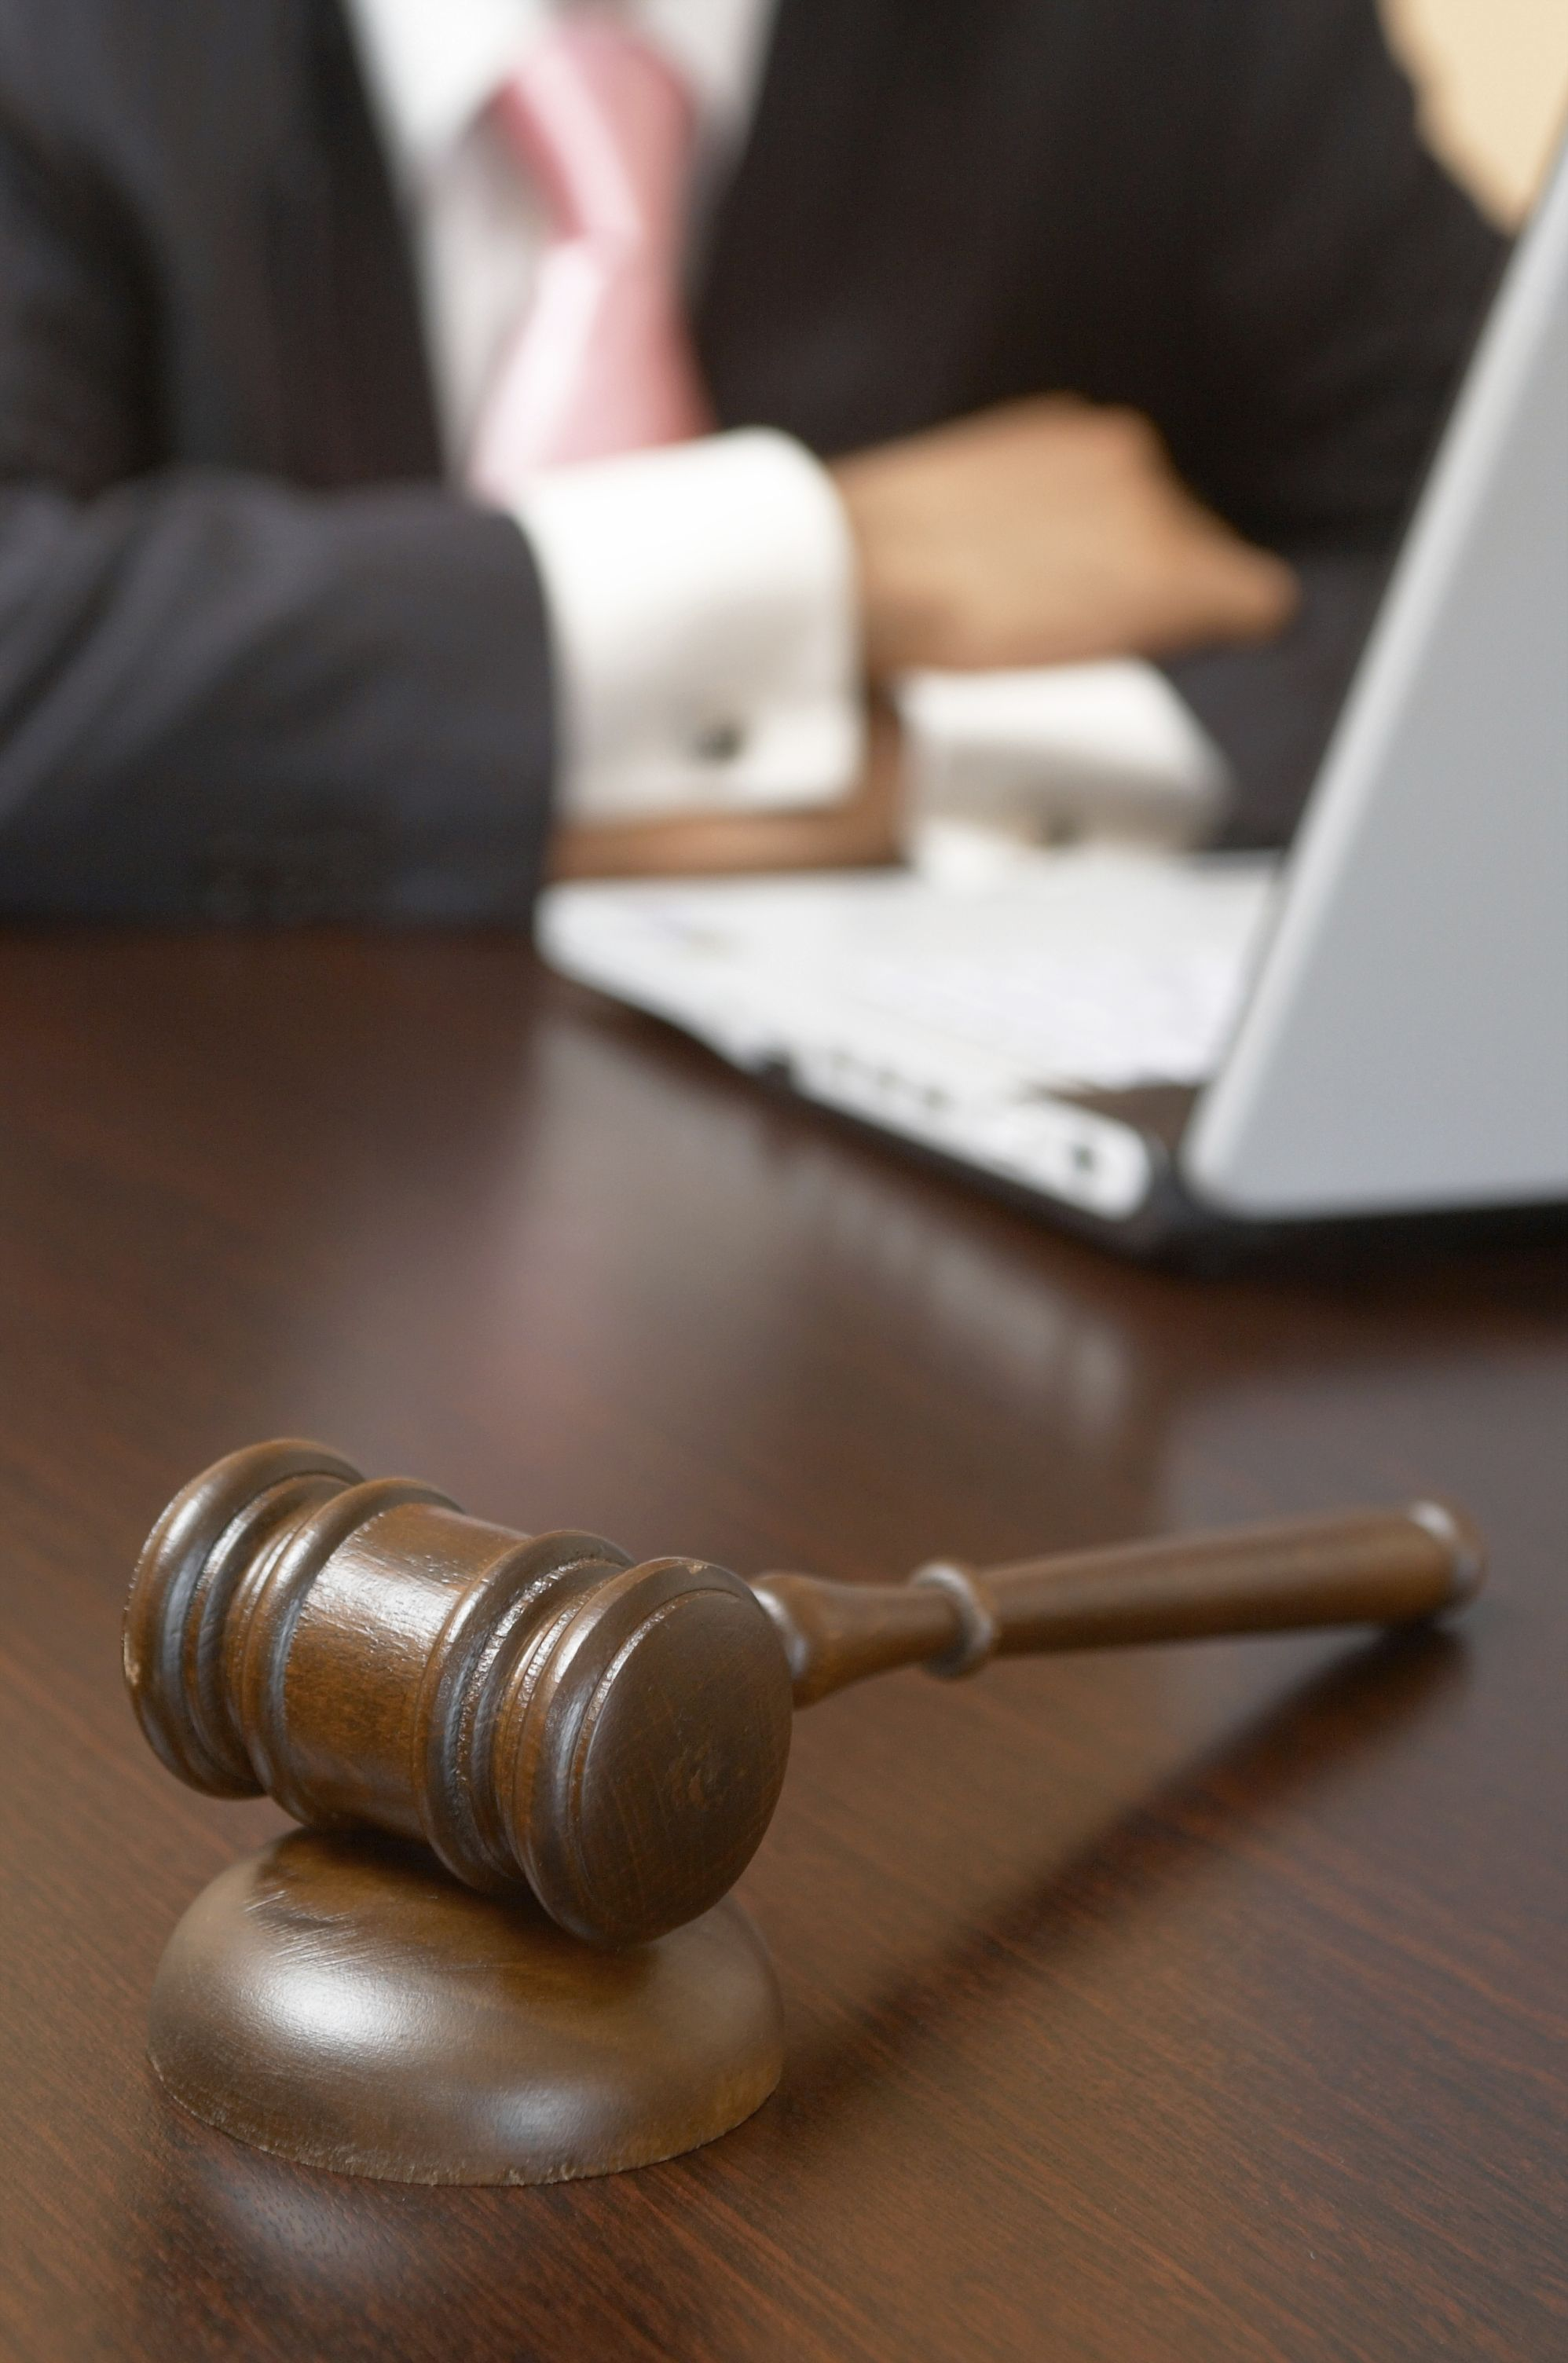 Criminal Defense Lawyers Orlando, FL (With images